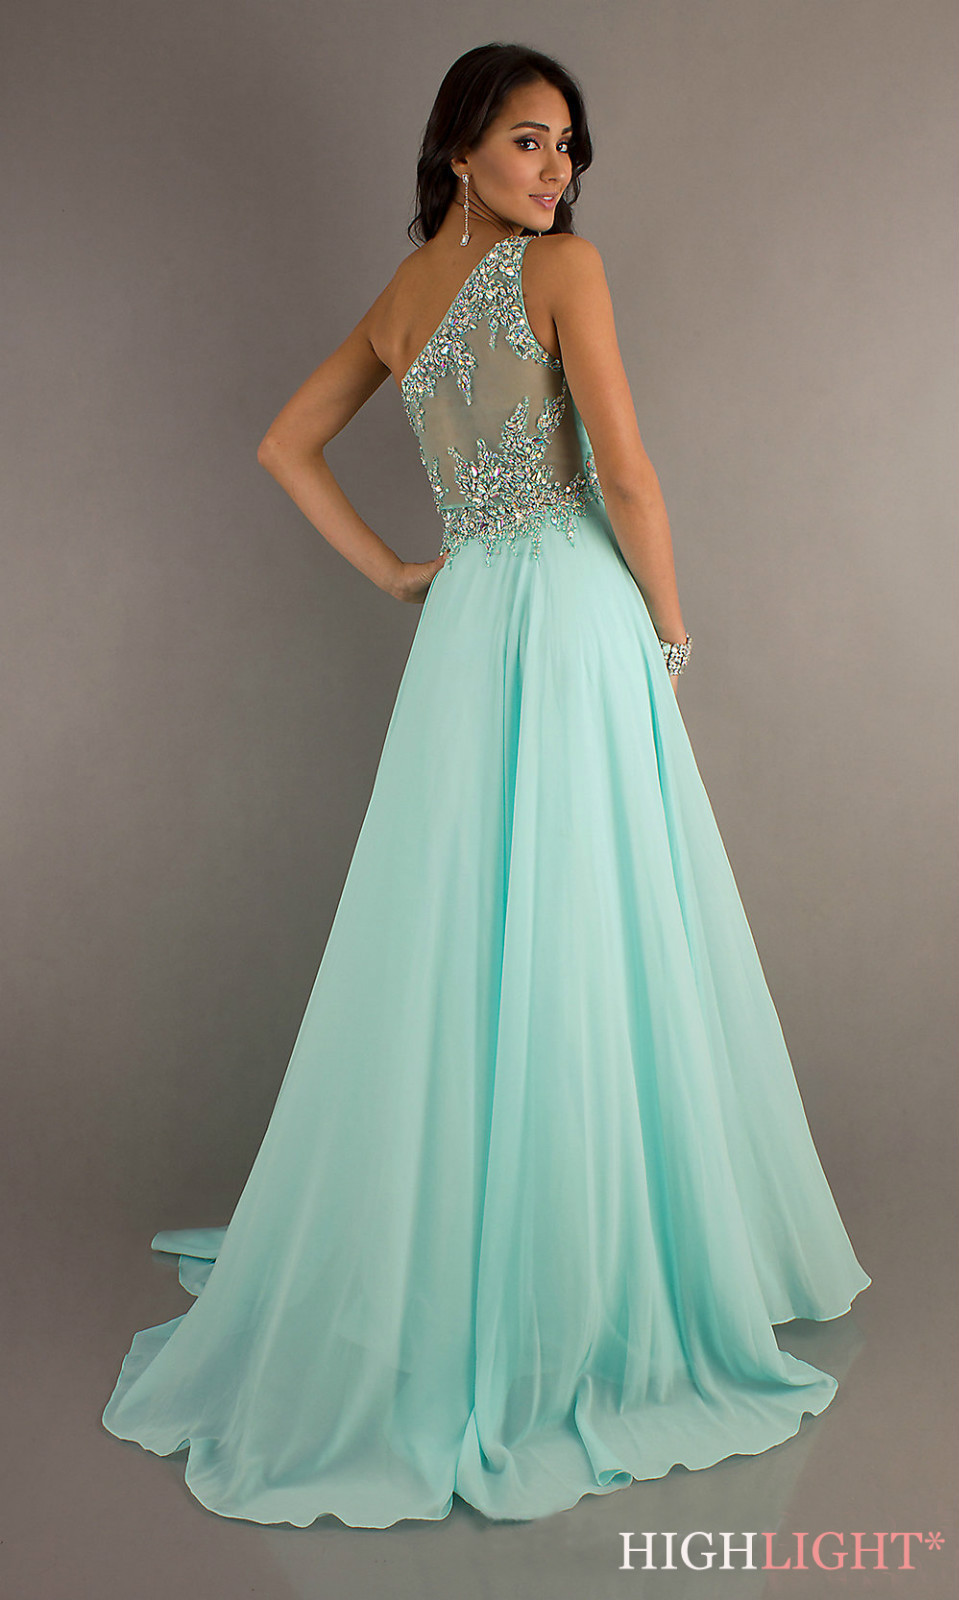 Mint Beaded Party Prom Evening Pageant Cocktail Dress Ball Gown 6 8 10 12 14 16 | eBay